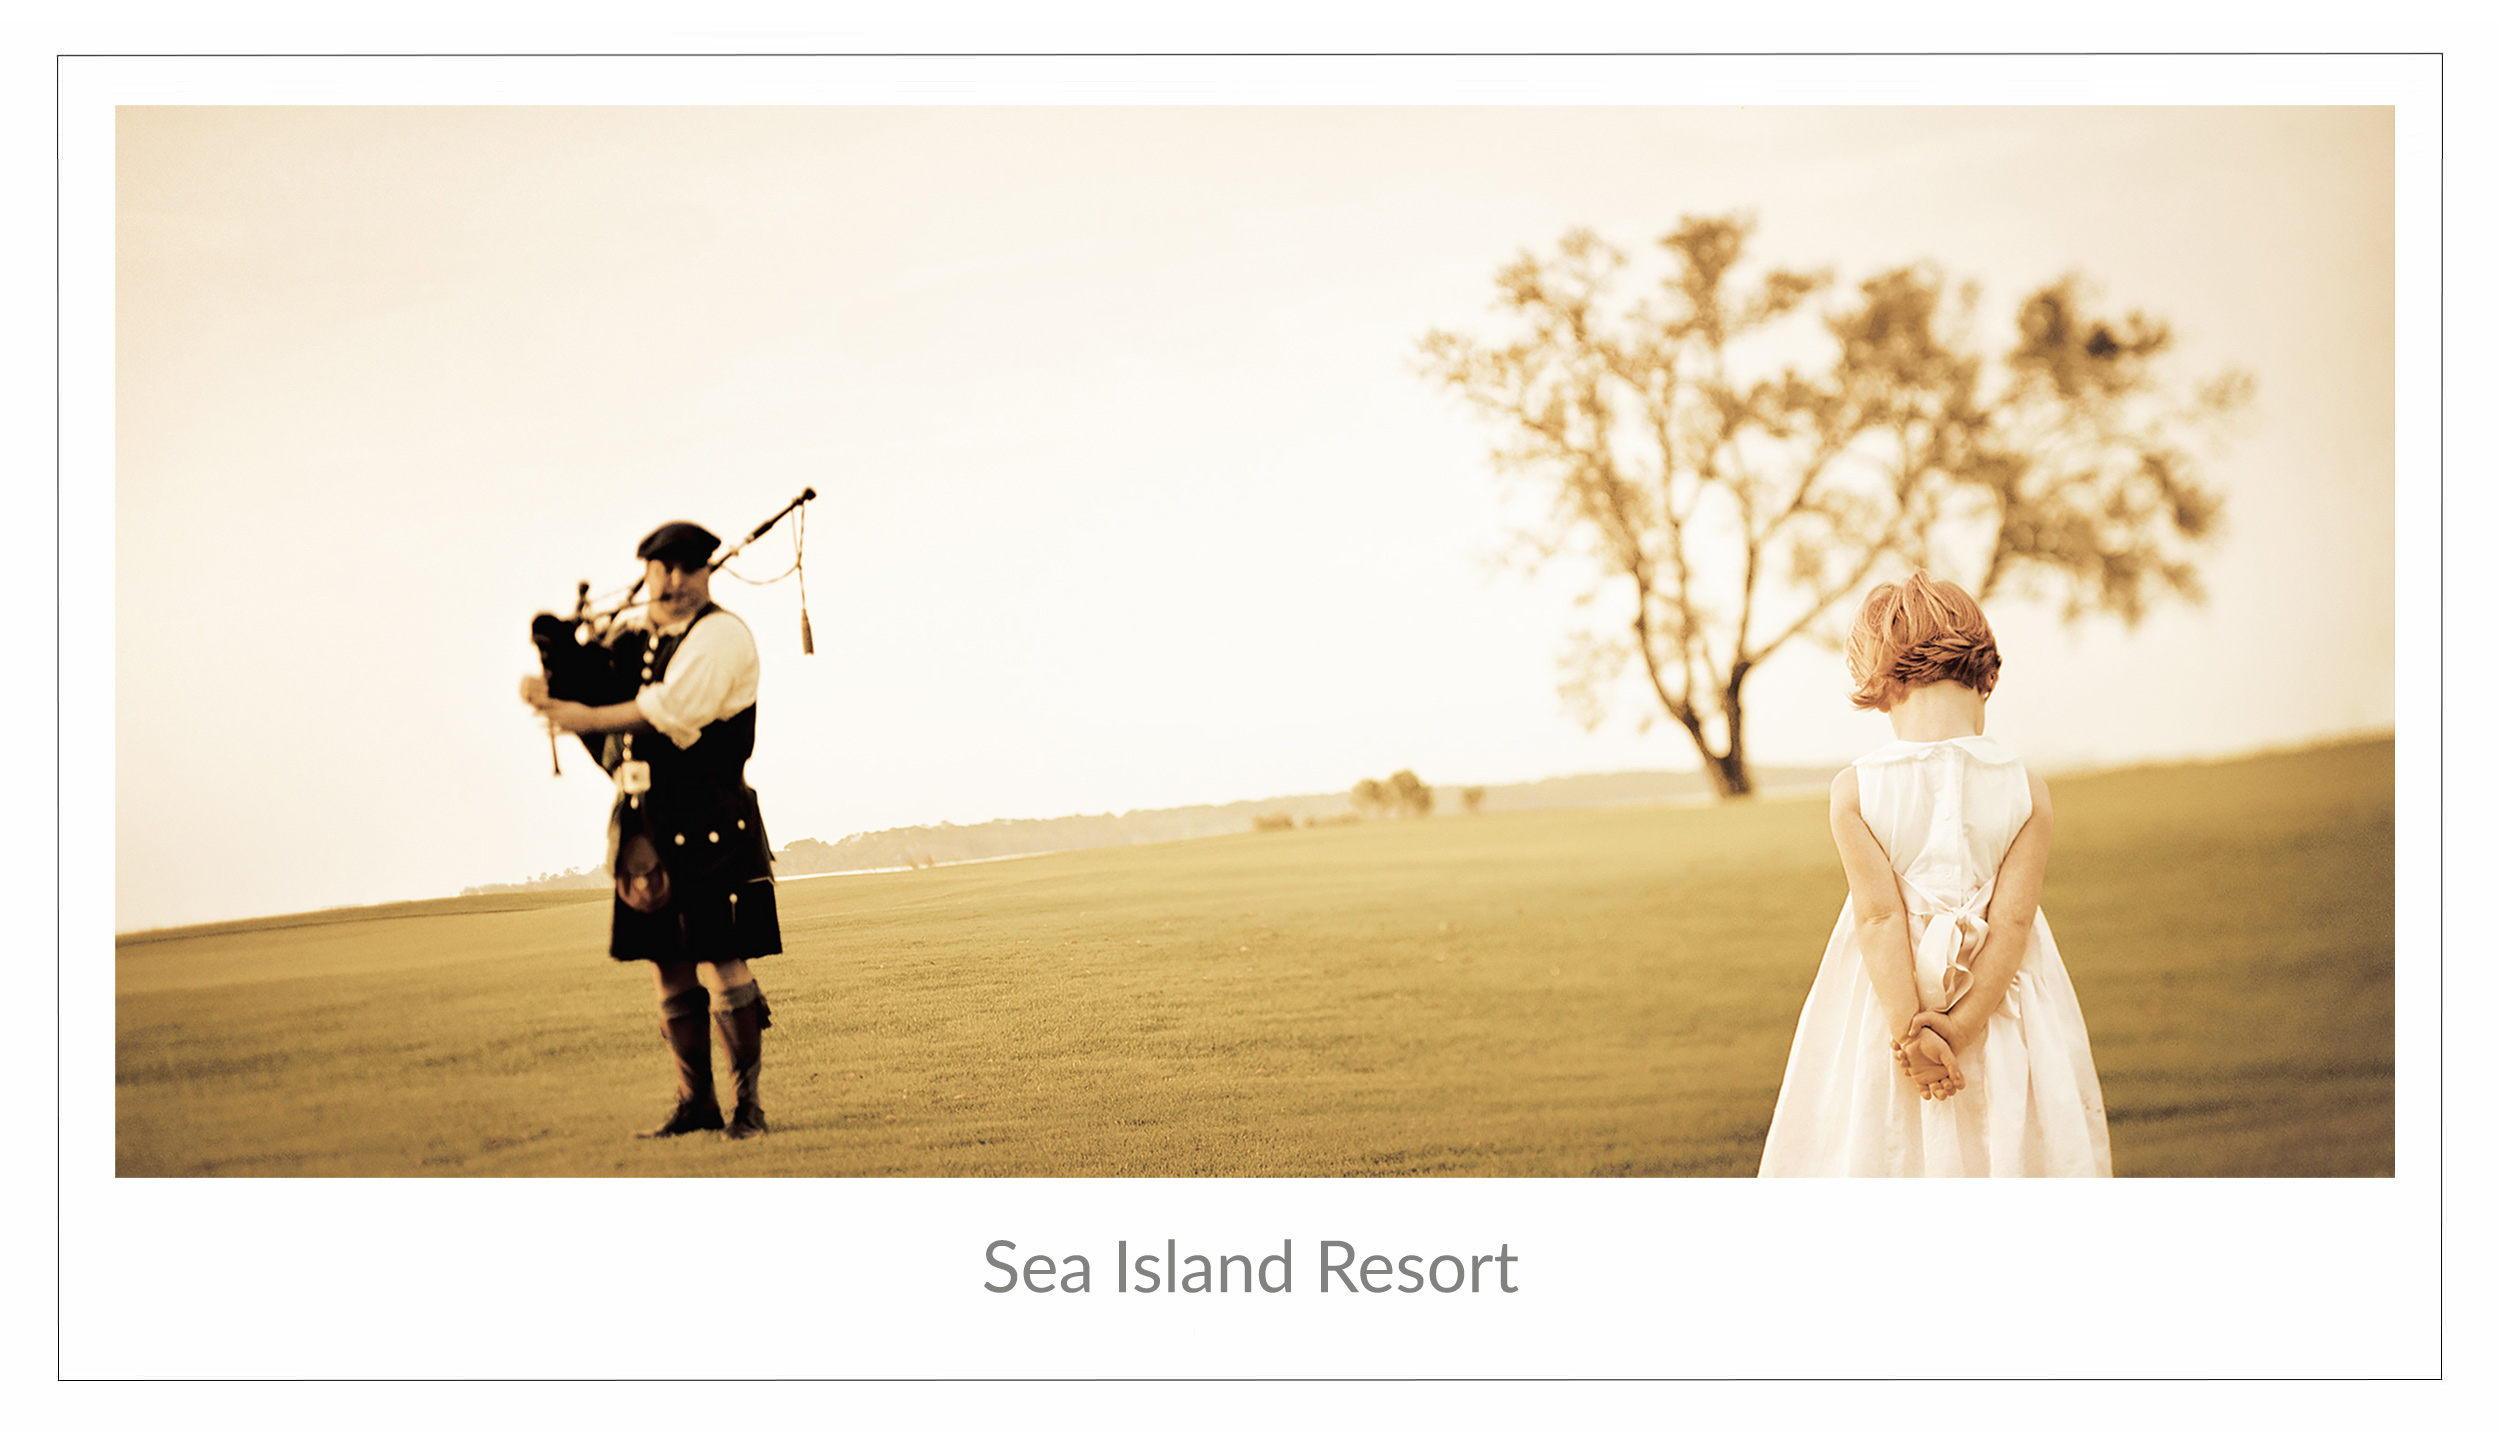 Advertising image of a young girl listening to a bagpiper at Sea Island Resort in Sea Island, Georgia